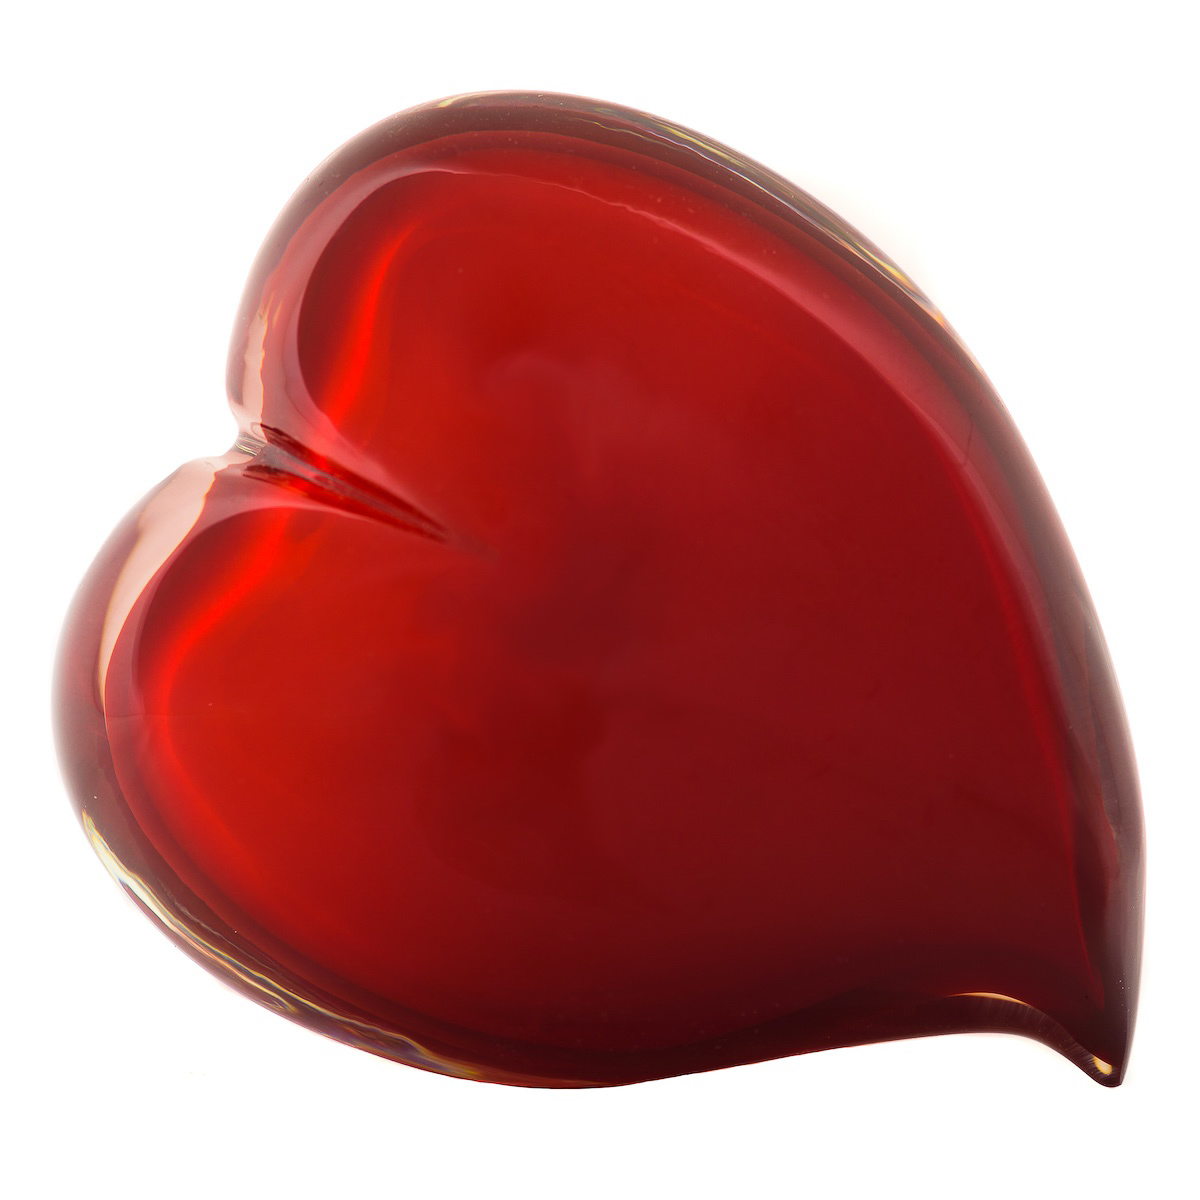 cuore-amore-red-passion-glass-heart